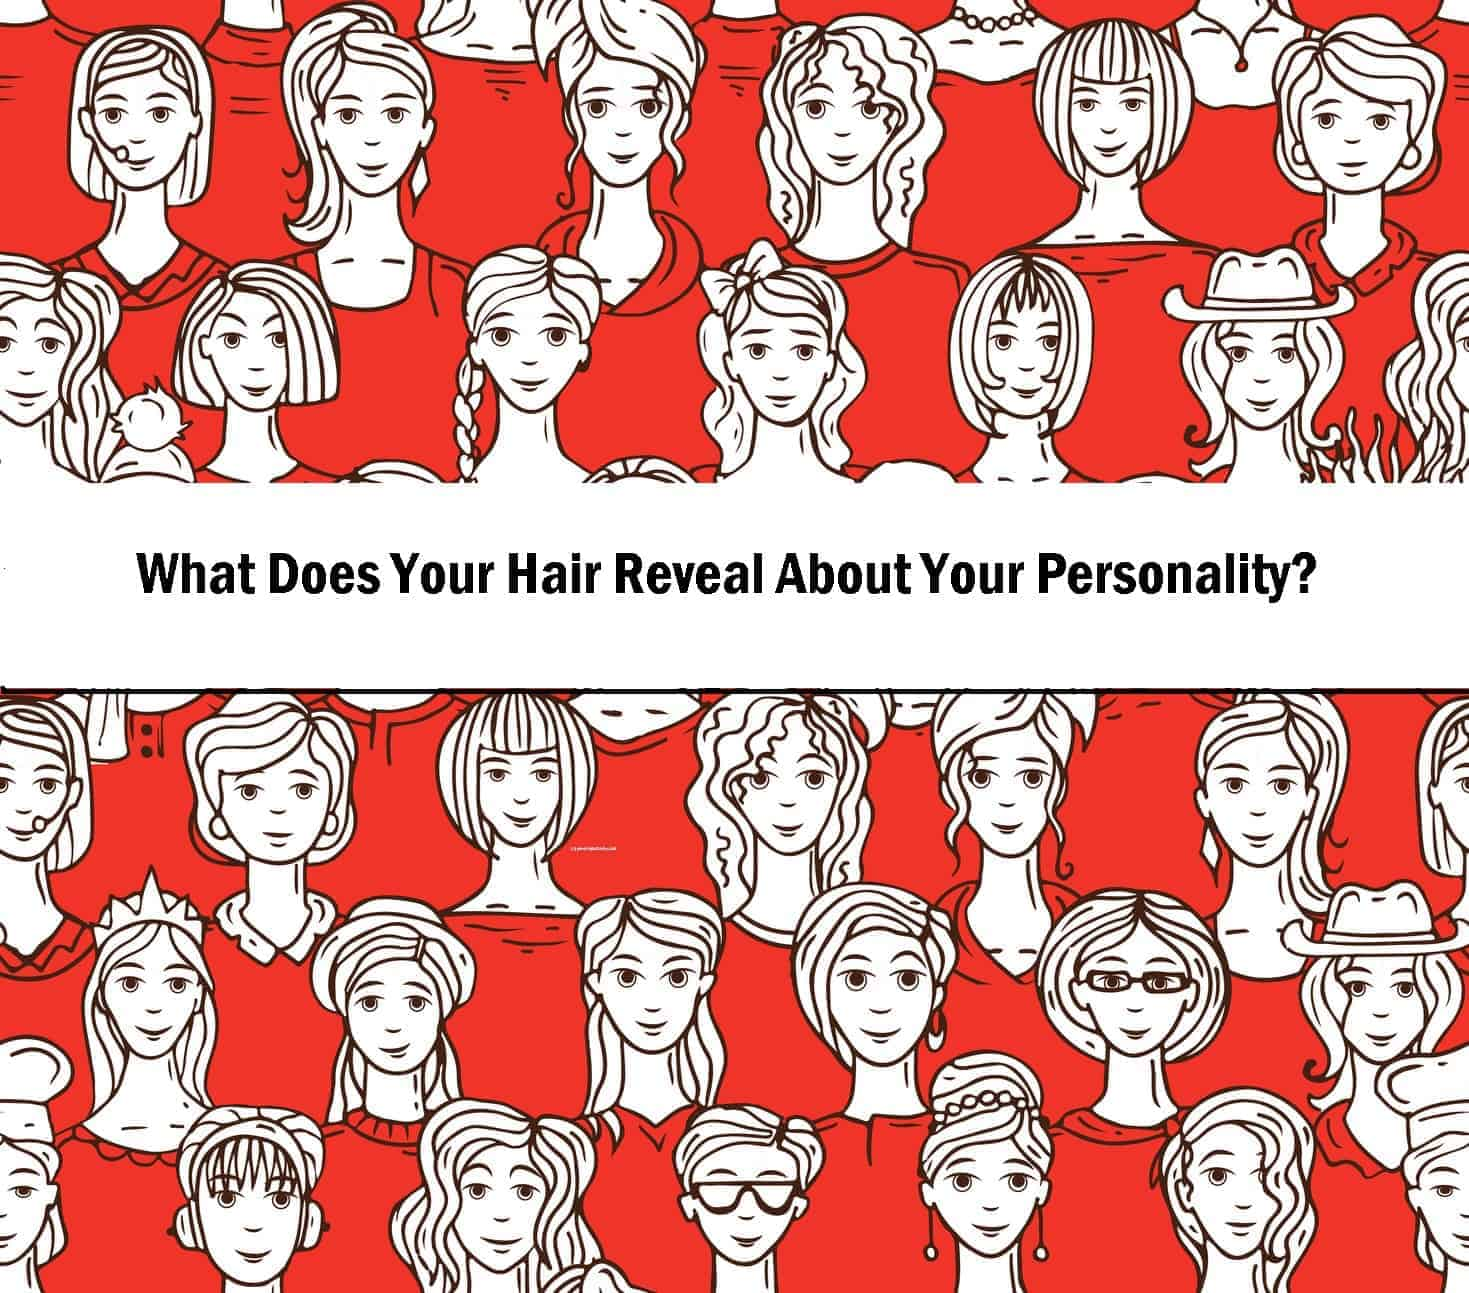 What Does Your Hair Reveal About Your Personality